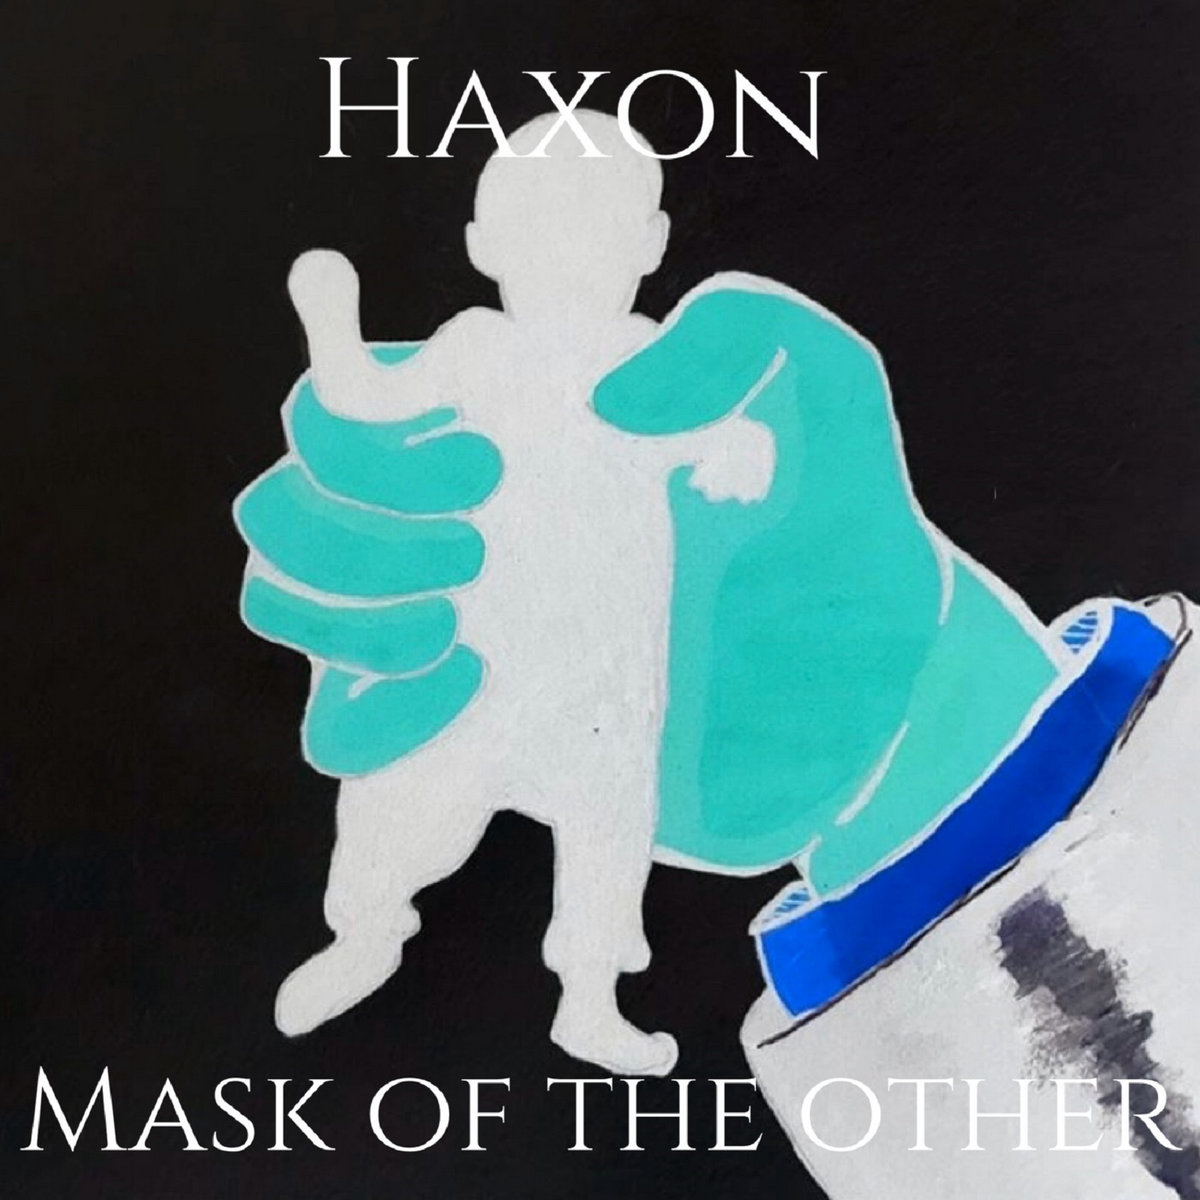 Mask of the Other by Haxon